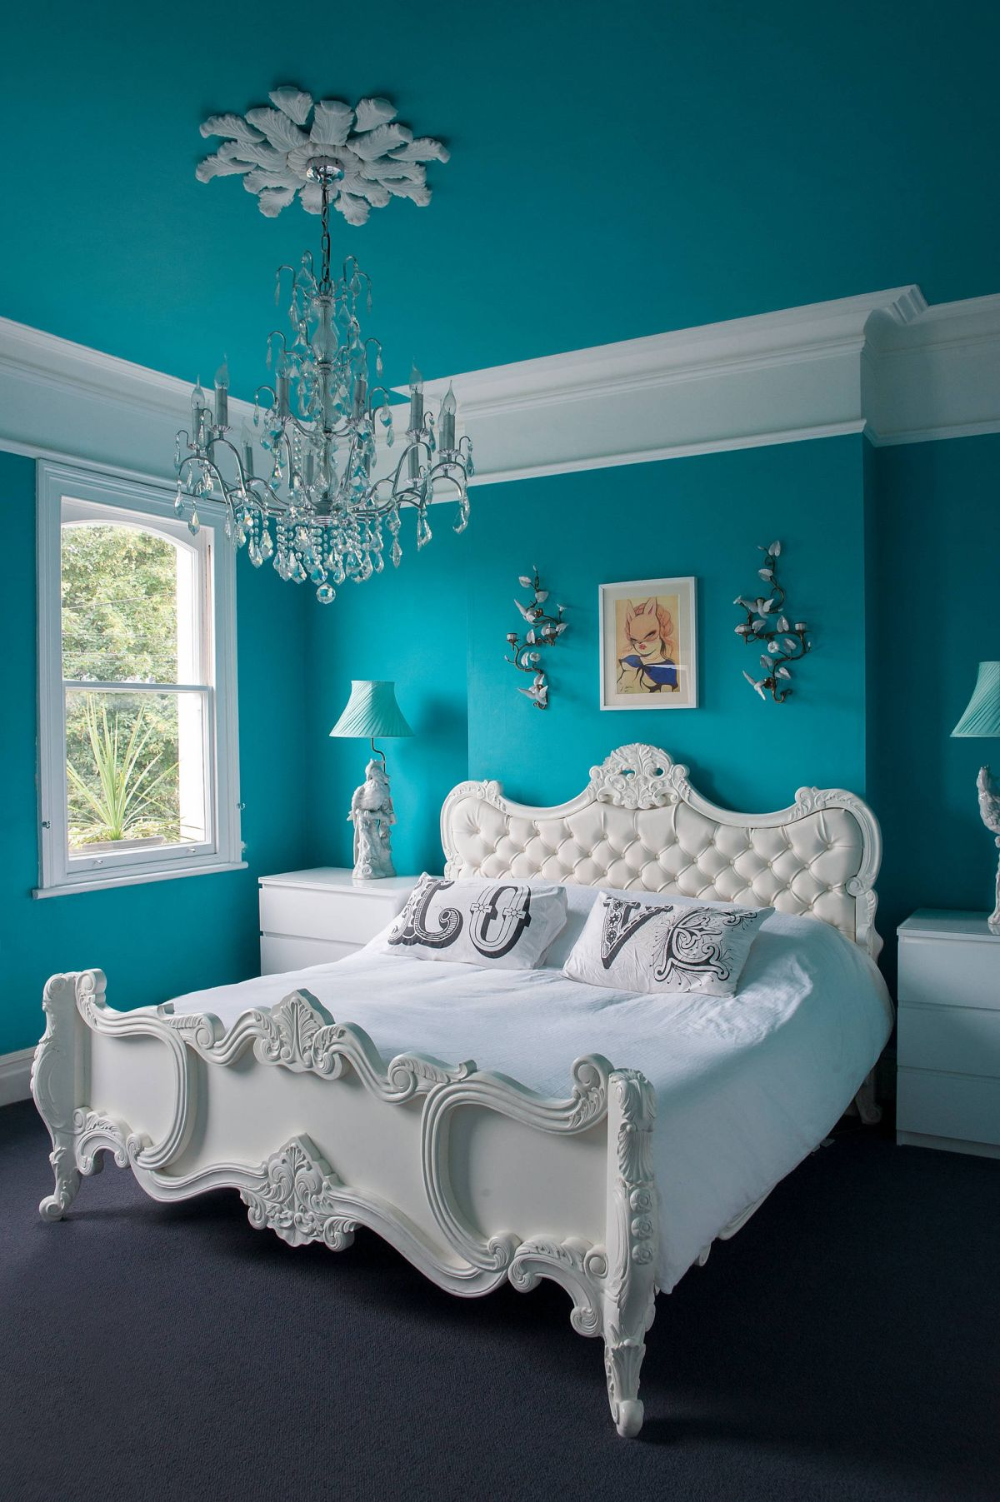 color to paint bedroom in 2020 Bedroom decor for women